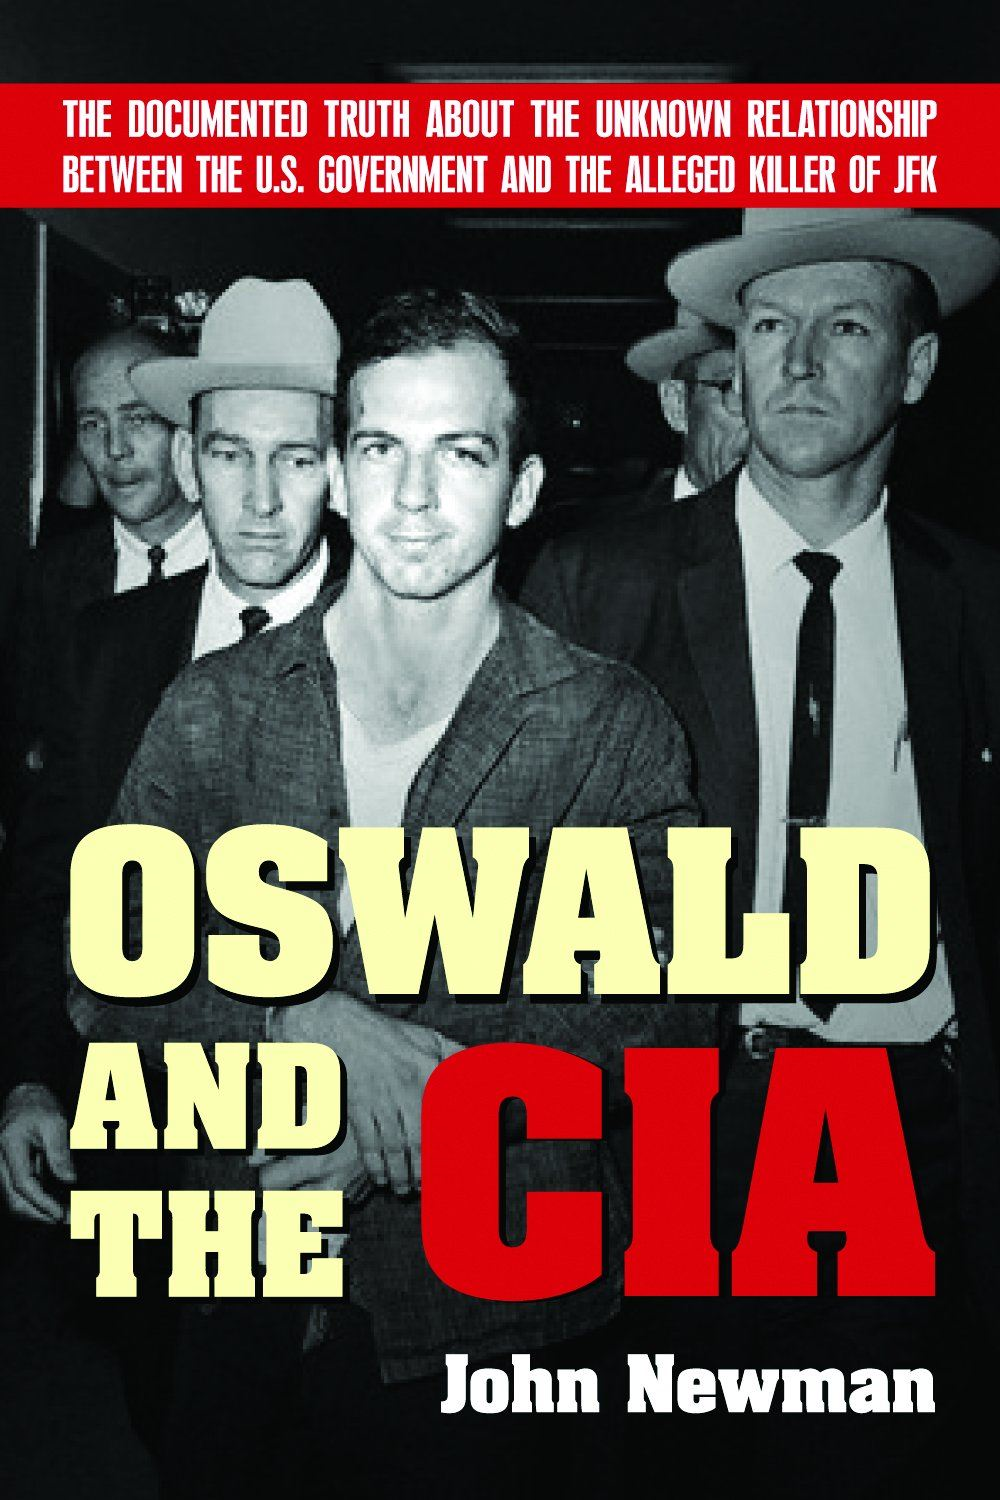 Oswald And The CIA: The Documented Truth About the Unknown Relationship Between the U.S. Government and the Alleged Killer of JFK By: John Newman